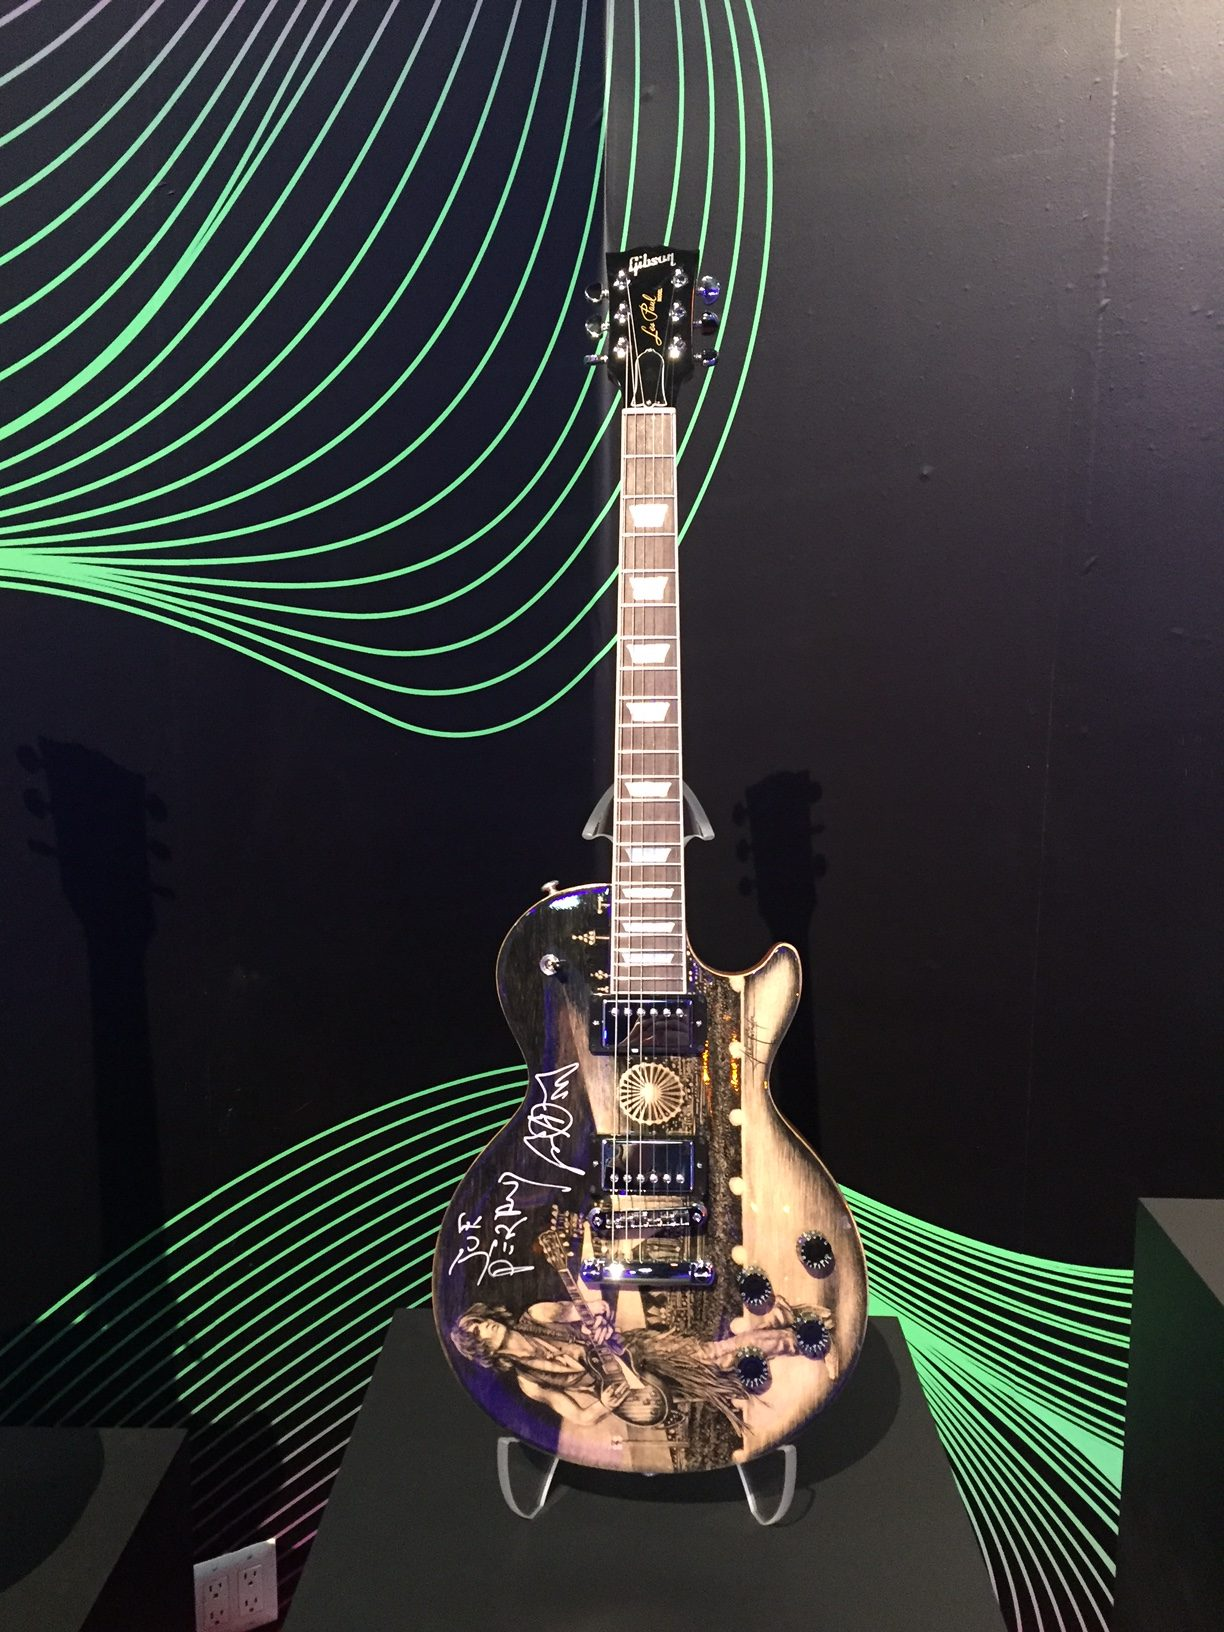 Joe auctions off custom Gibson guitar!